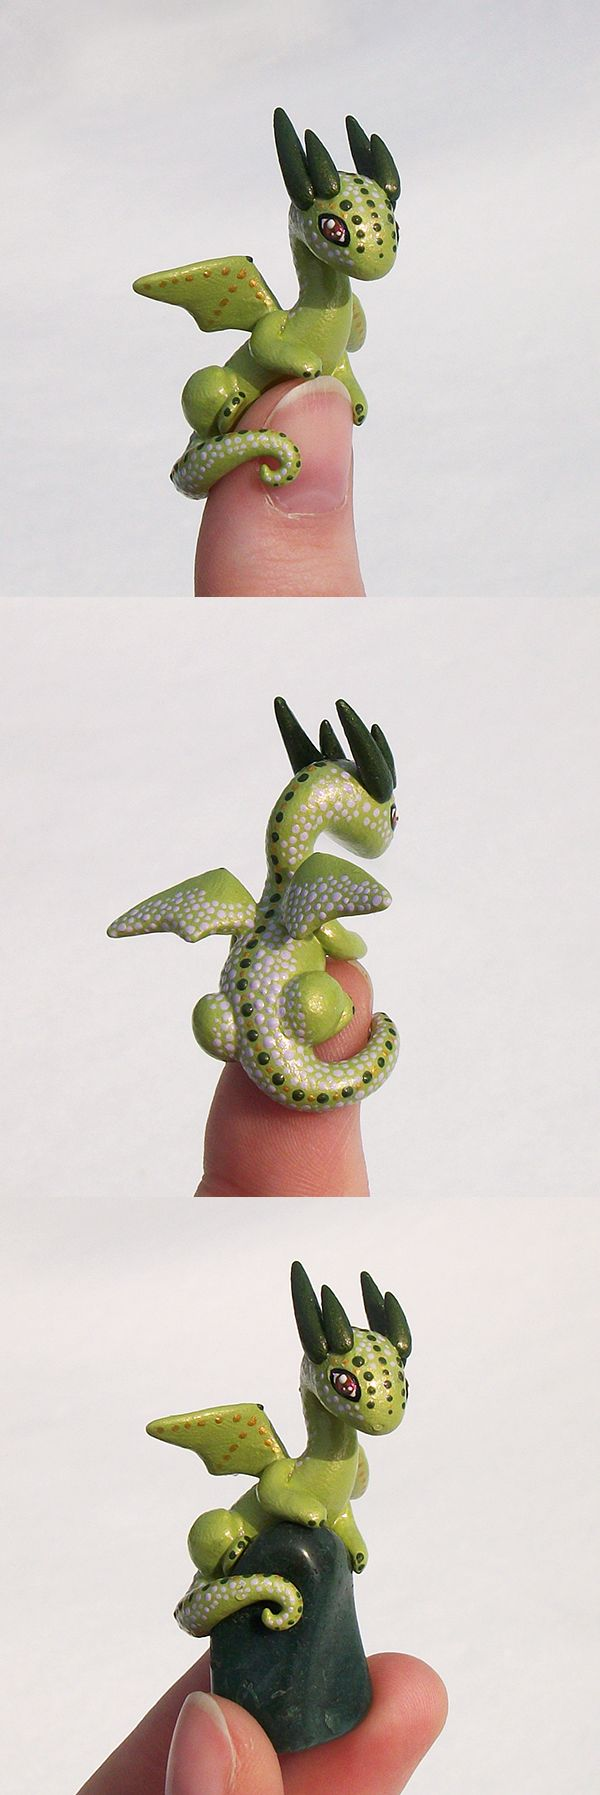 Green 'Thumb' Dragon by KingMelissa on deviantART